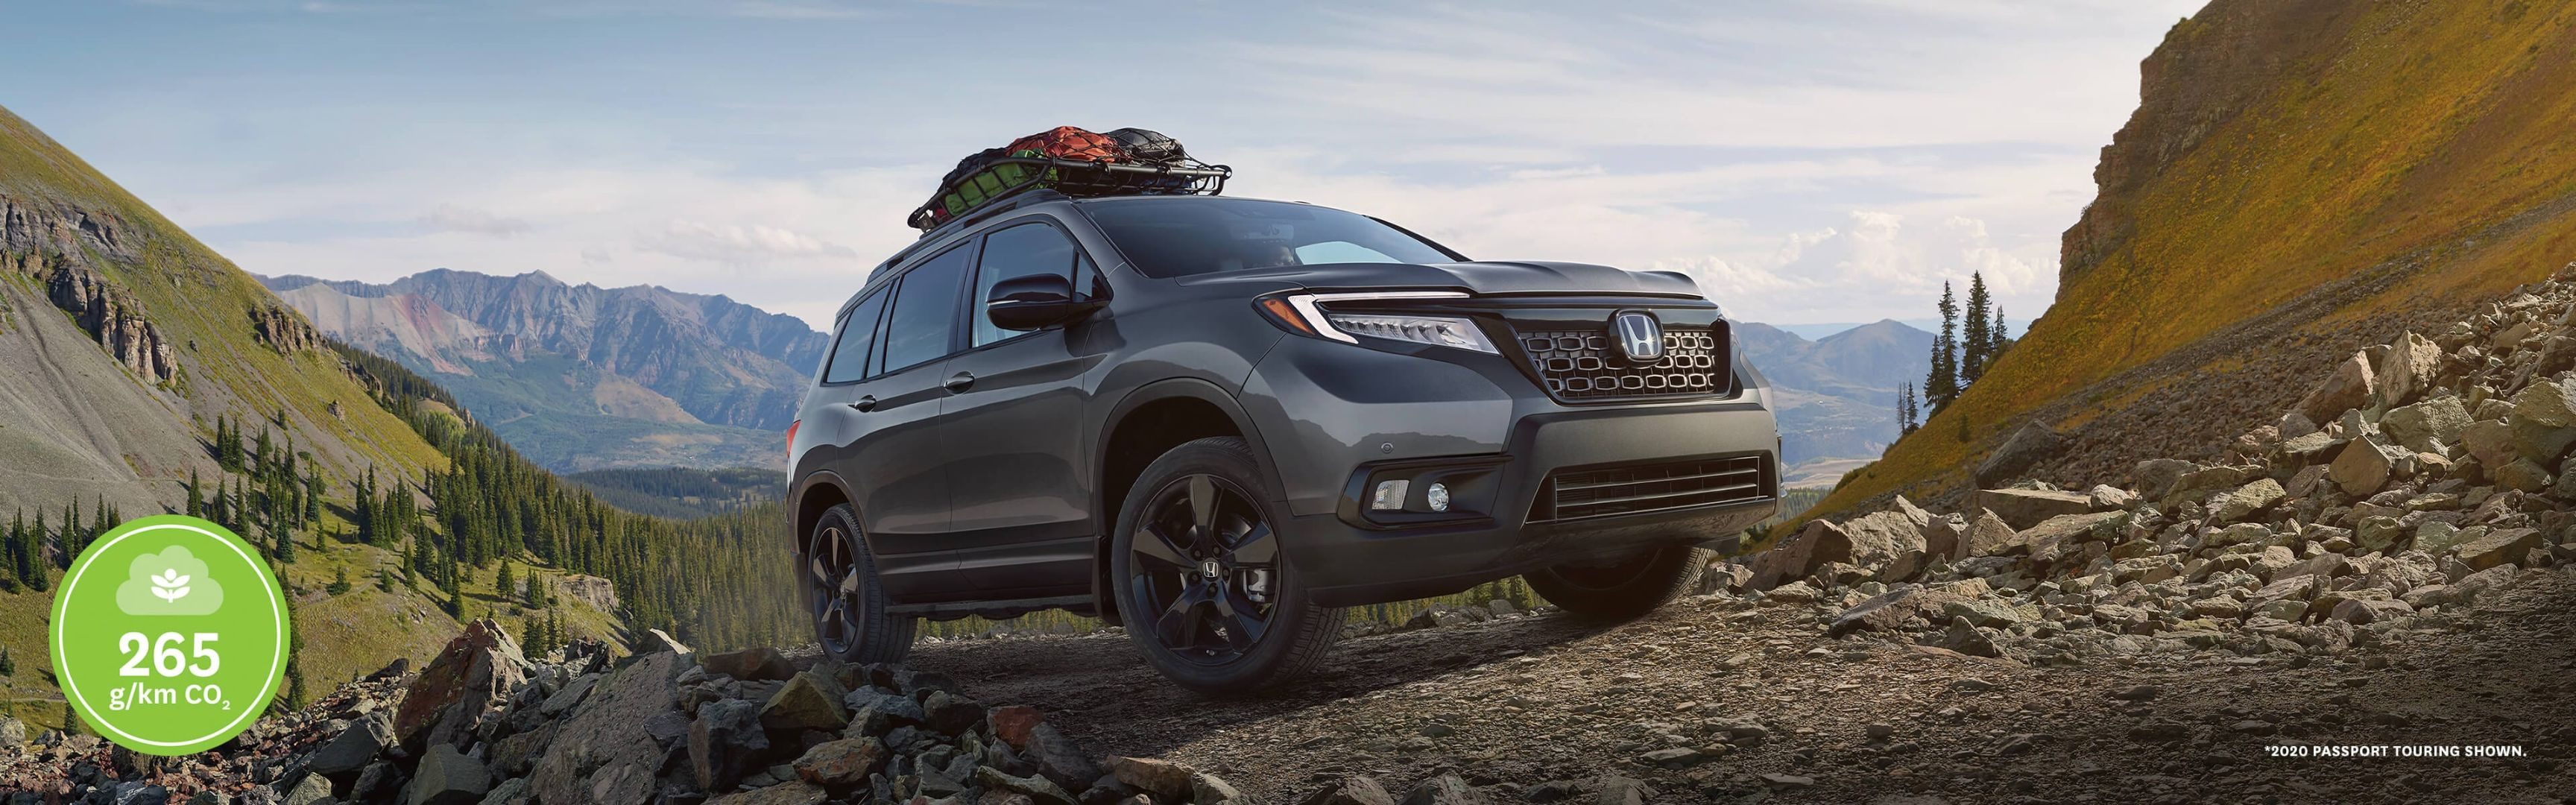 Front 3/4 view of 2020 Honda Passport Touring in Modern Steel Metallic parked at a campsite next to a lake.